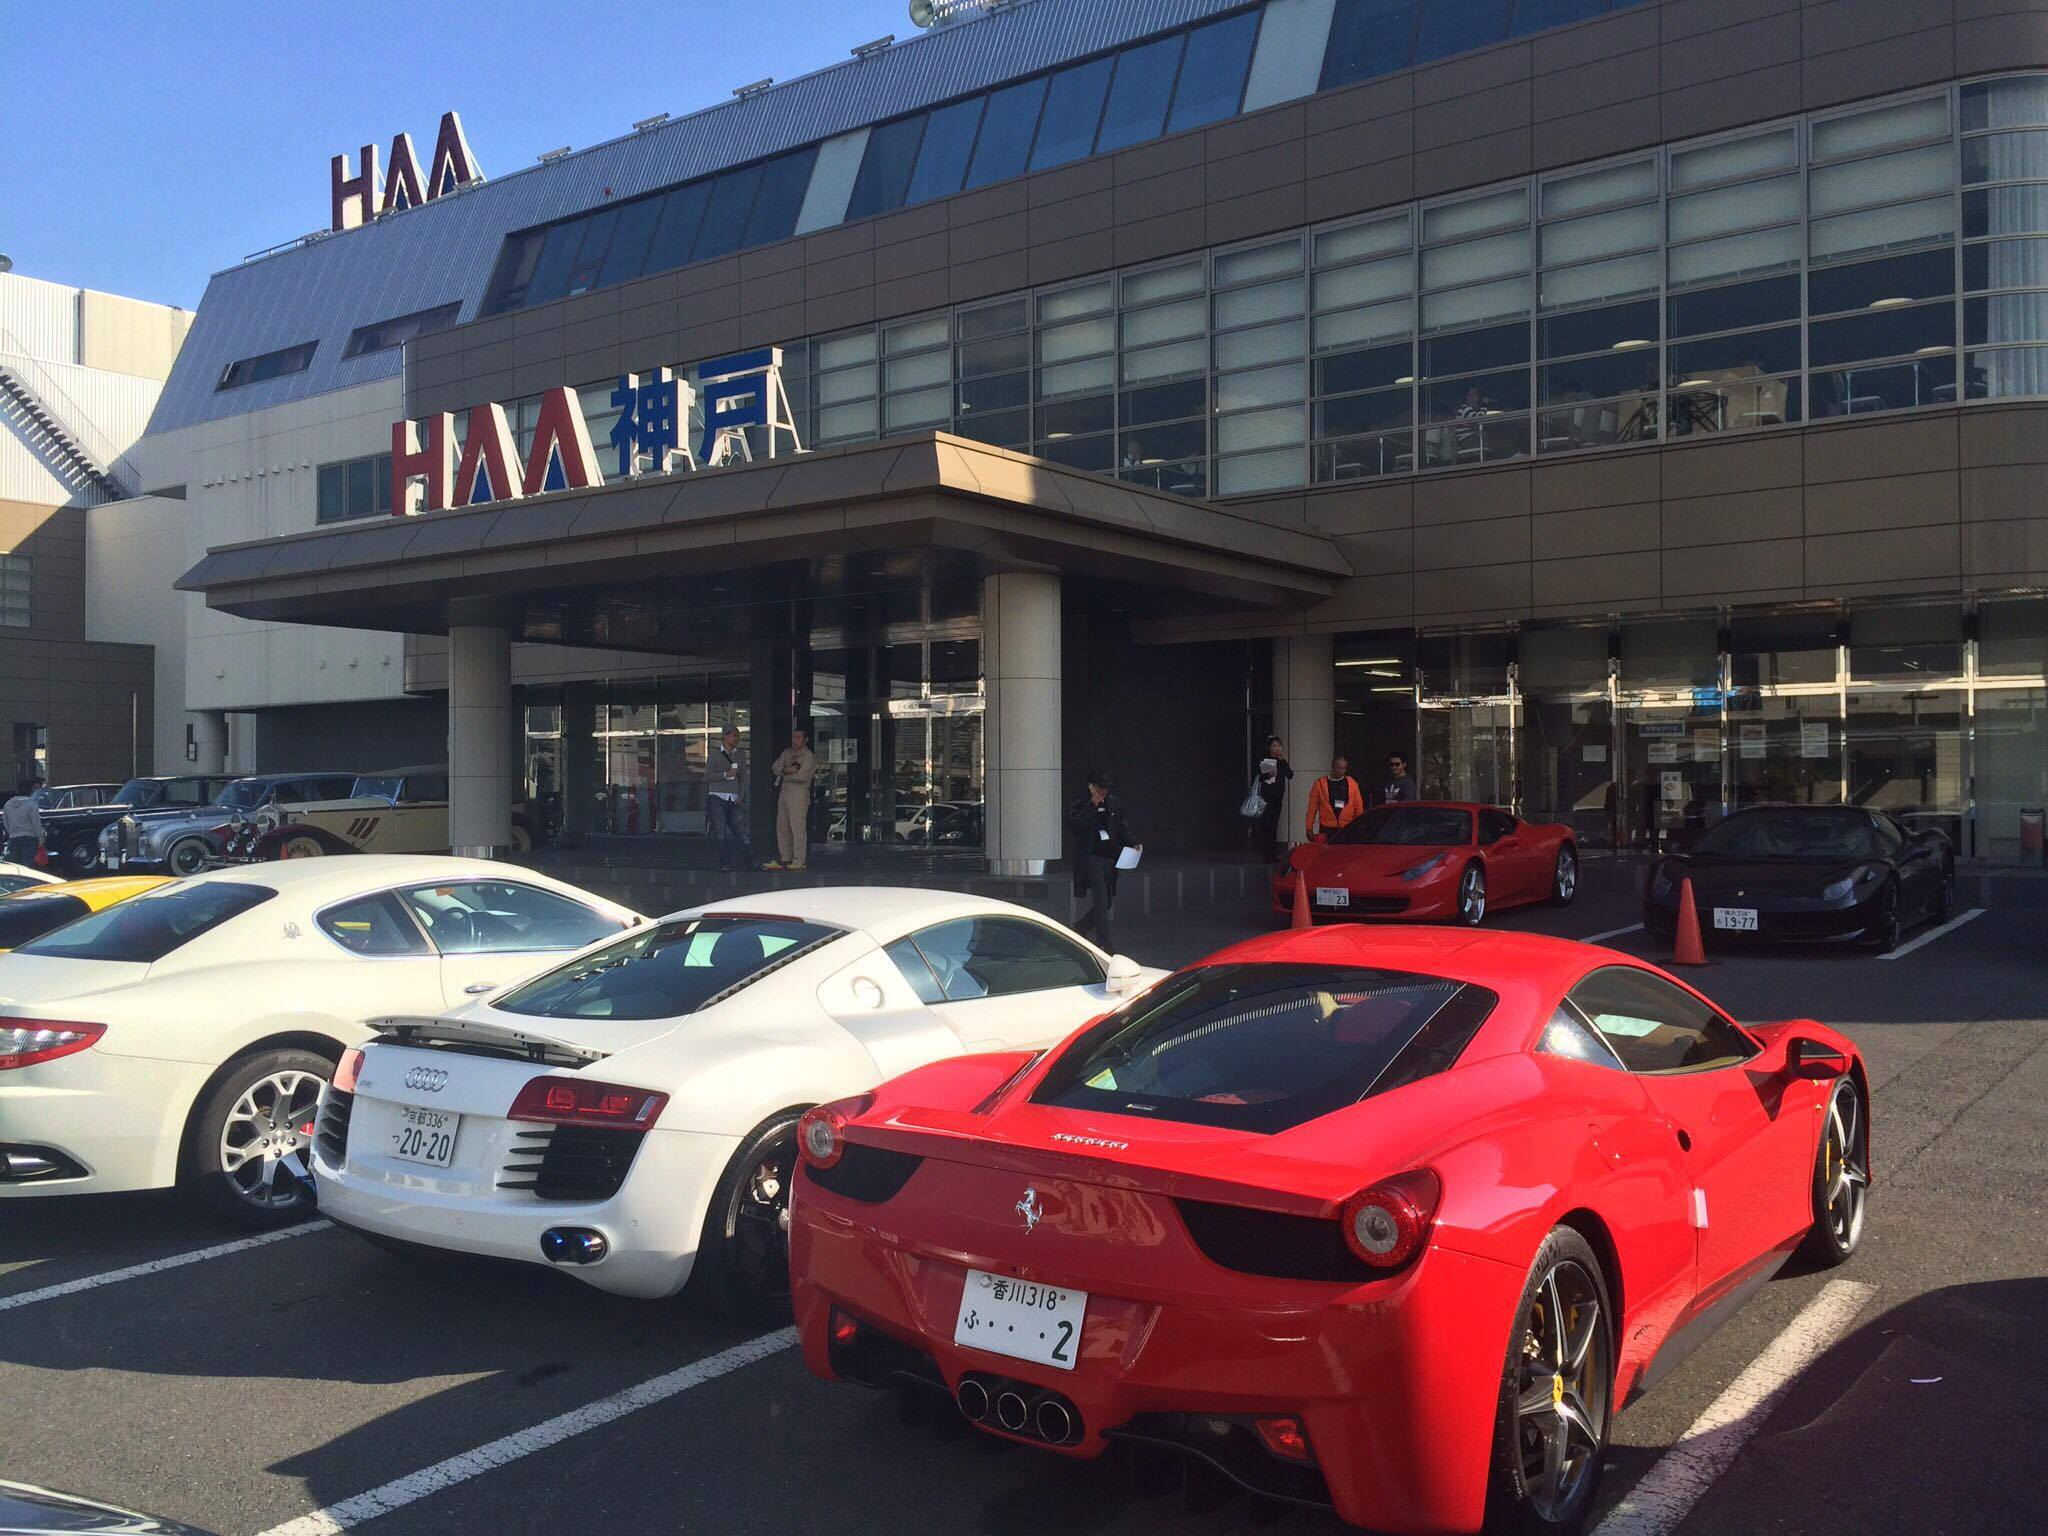 HAA Kobe auction house entrance. All the good stuff is parked out the front.